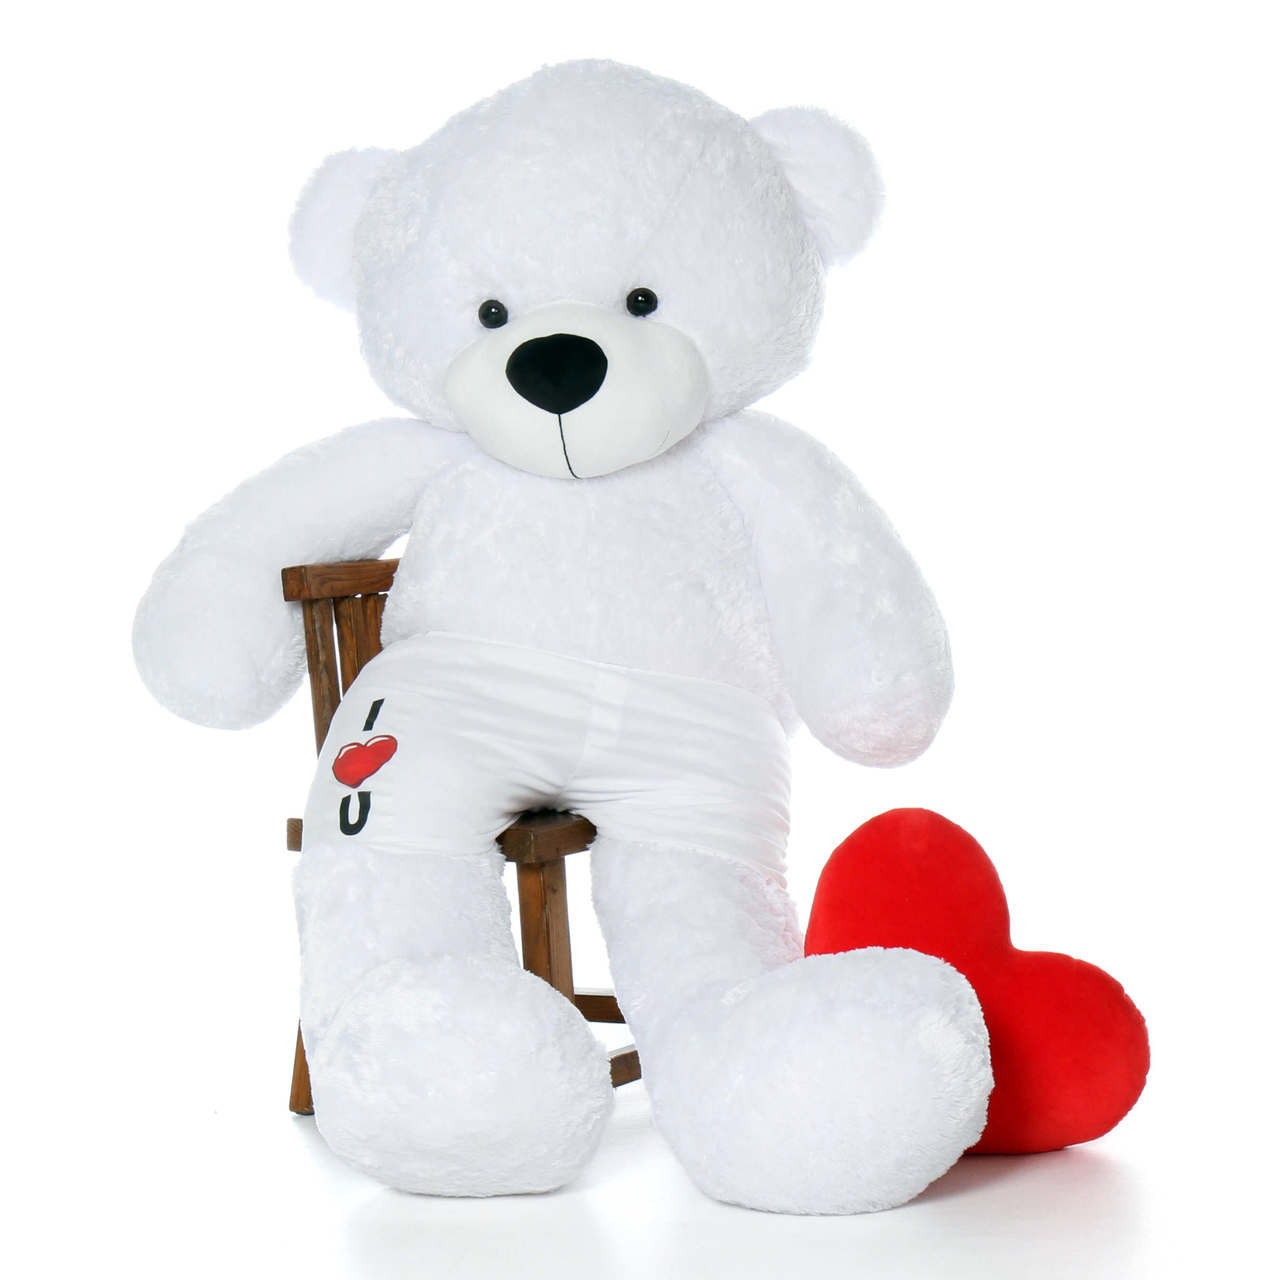 72in Giant Teddy White Coco Cuddles in I Heart u Boxers